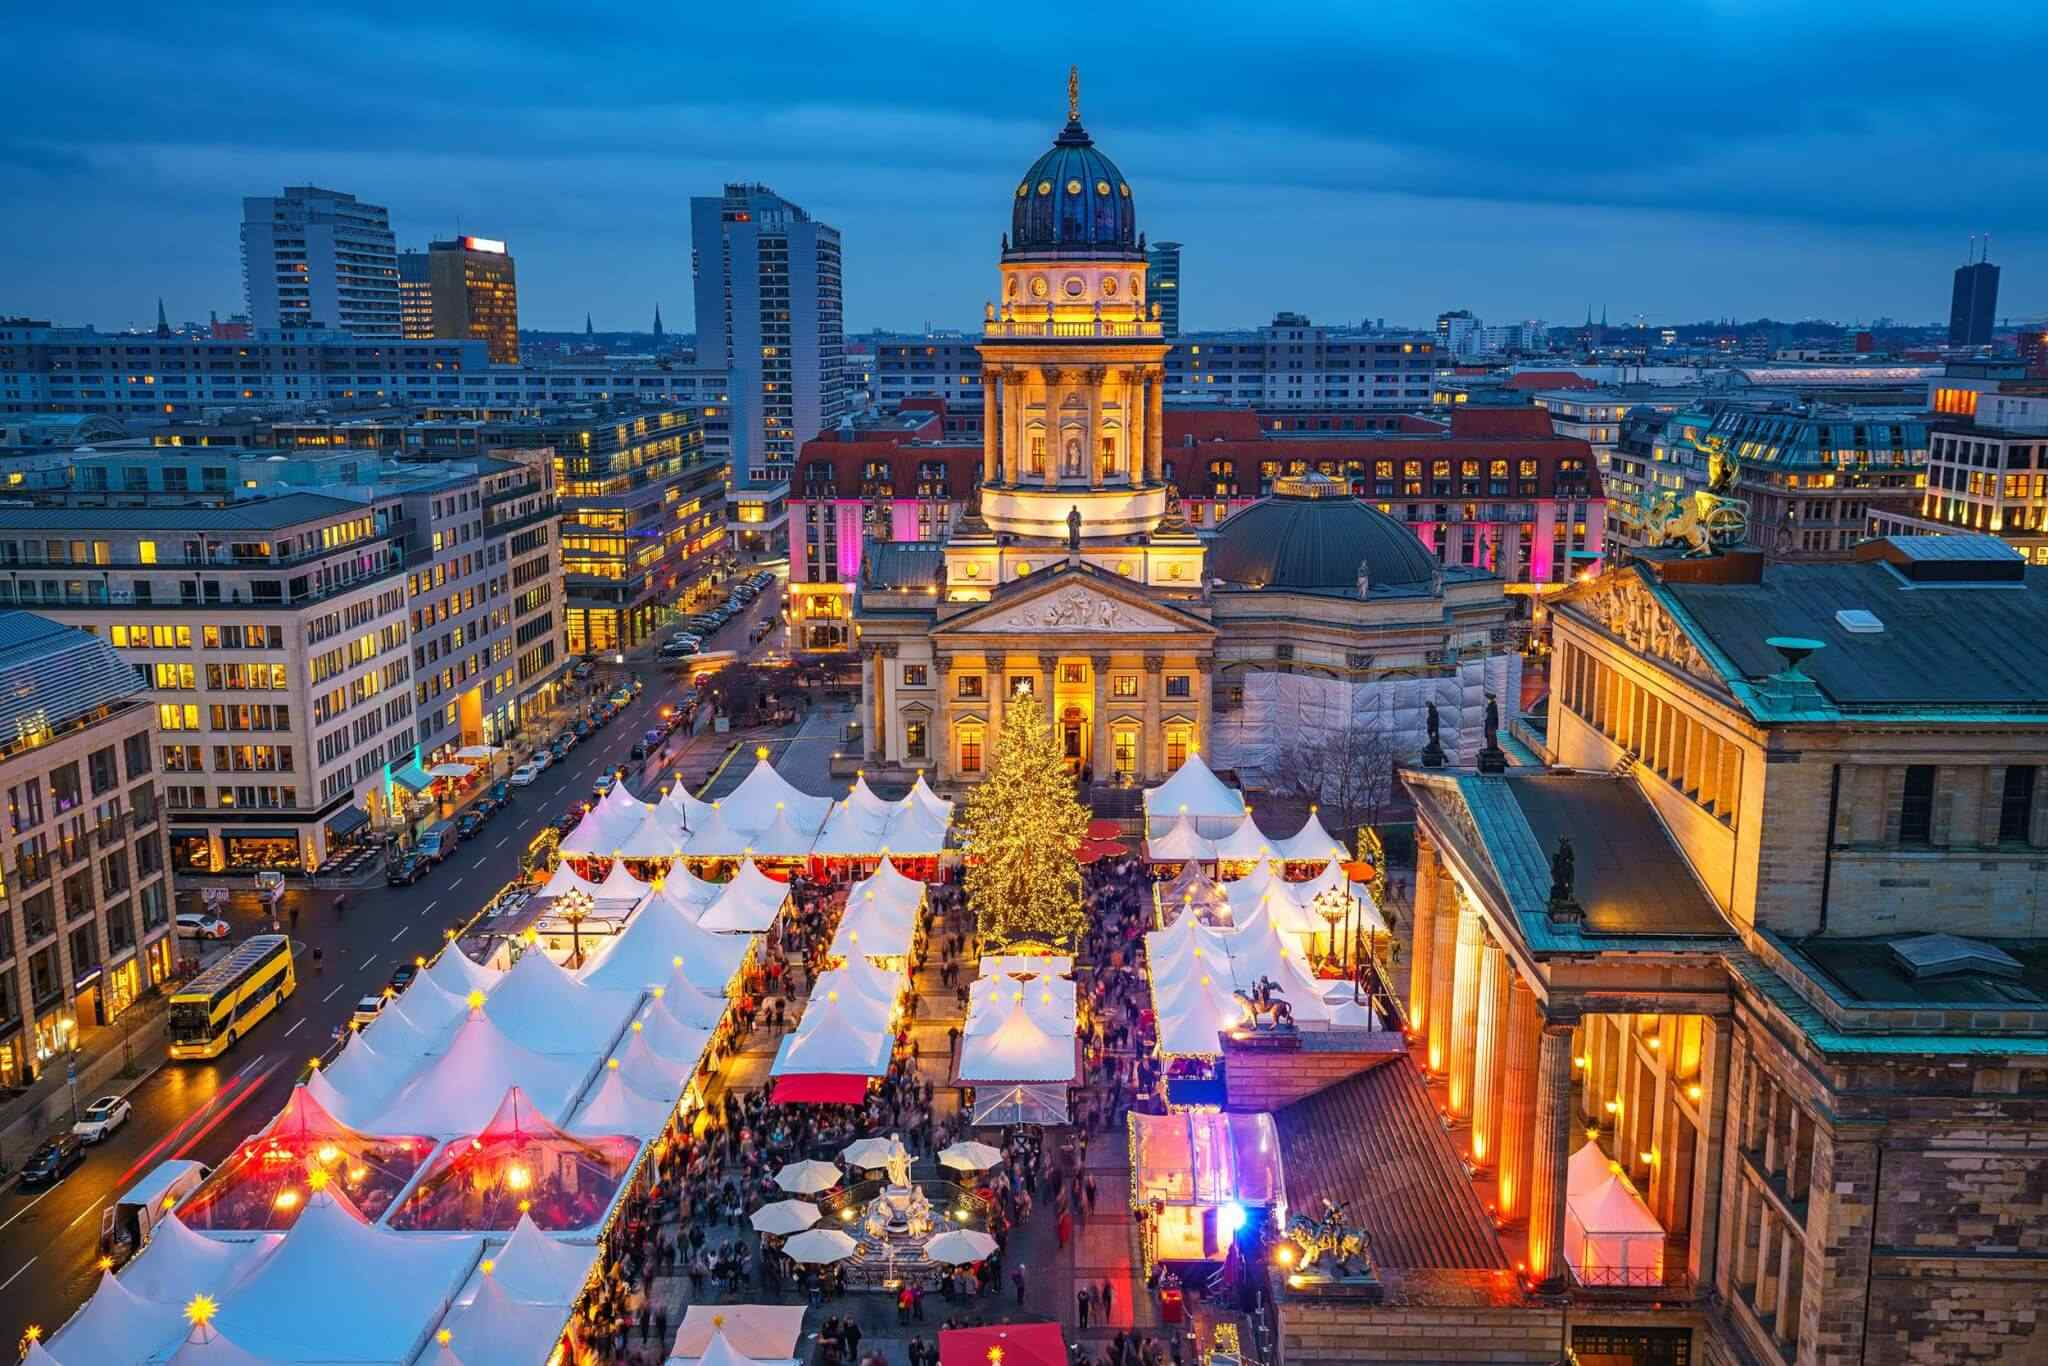 https://www.banitours.com/wp-content/uploads/2018/09/destination-berlin-07.jpg